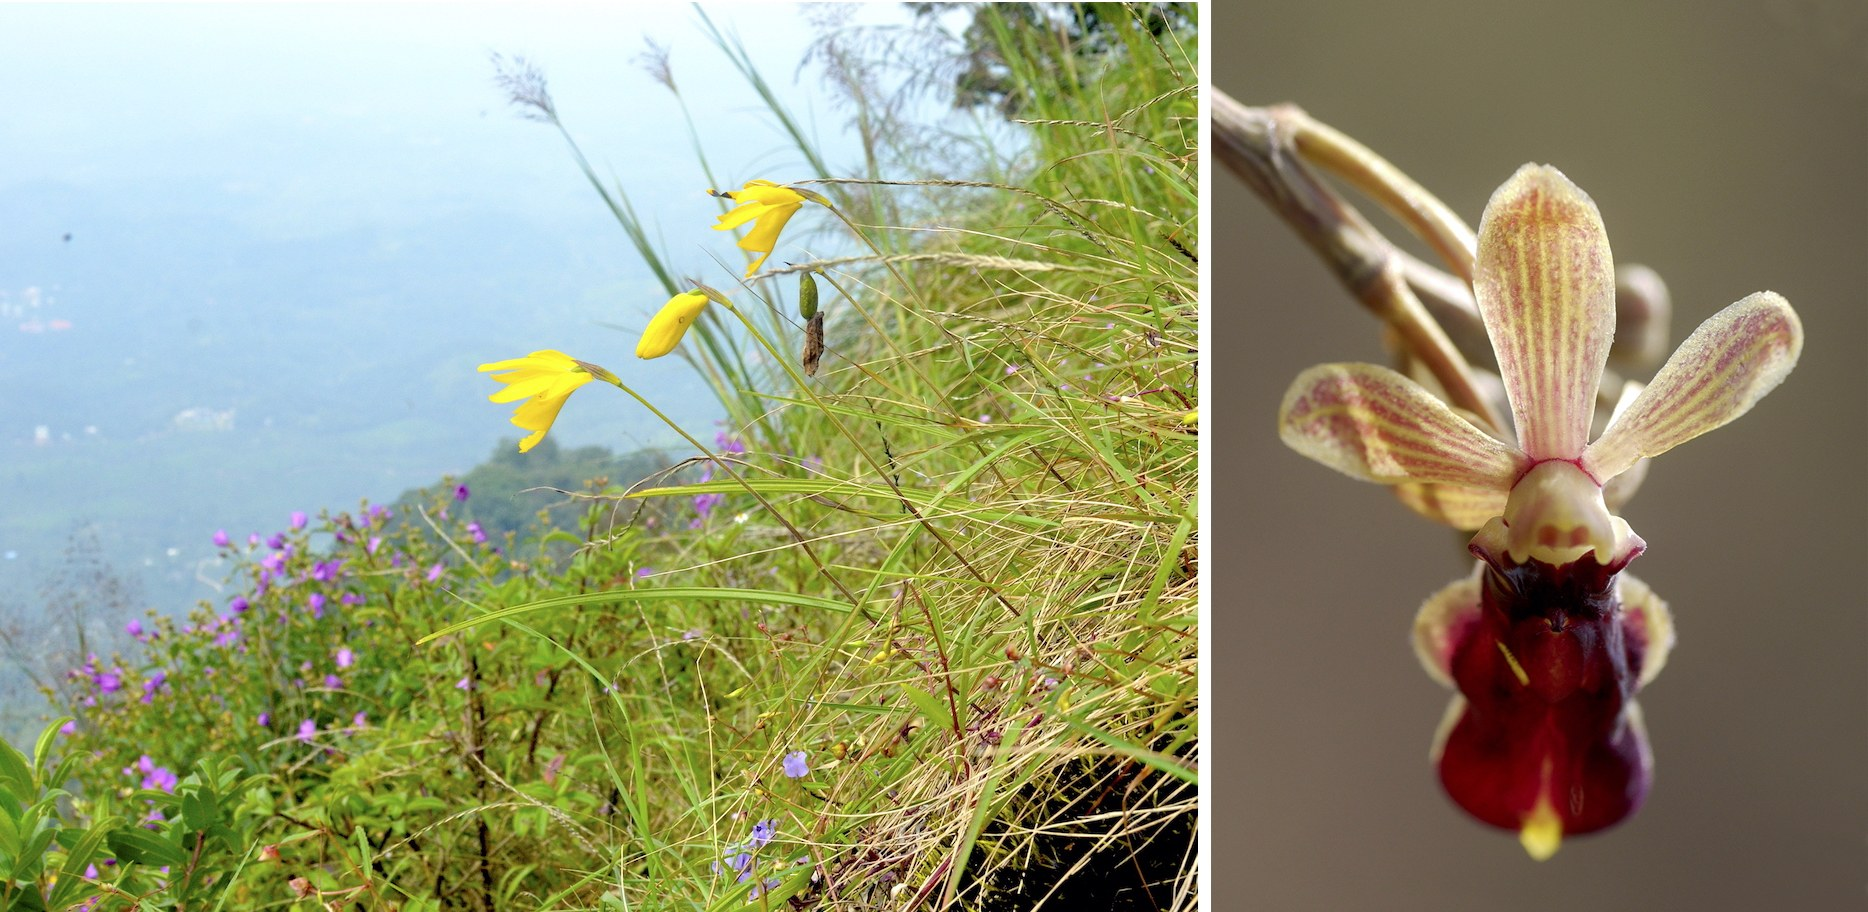 (Left) Ipsea malabarica, also known as the Malabar daffodil was believed to be extinct but was rediscovered in Silent Valley in 1982. (Right) Cottonia peduncularis (Lindl.) Rchb.f. is named because of its long peduncle (flower stalk). It is popularly known as the bee orchid as the flower lip resembles a bee to attract male bees and help in pollination.  Photos: Jis Sebastian (left), Dinesh Valke / CC BY-SA 2.0 (right)